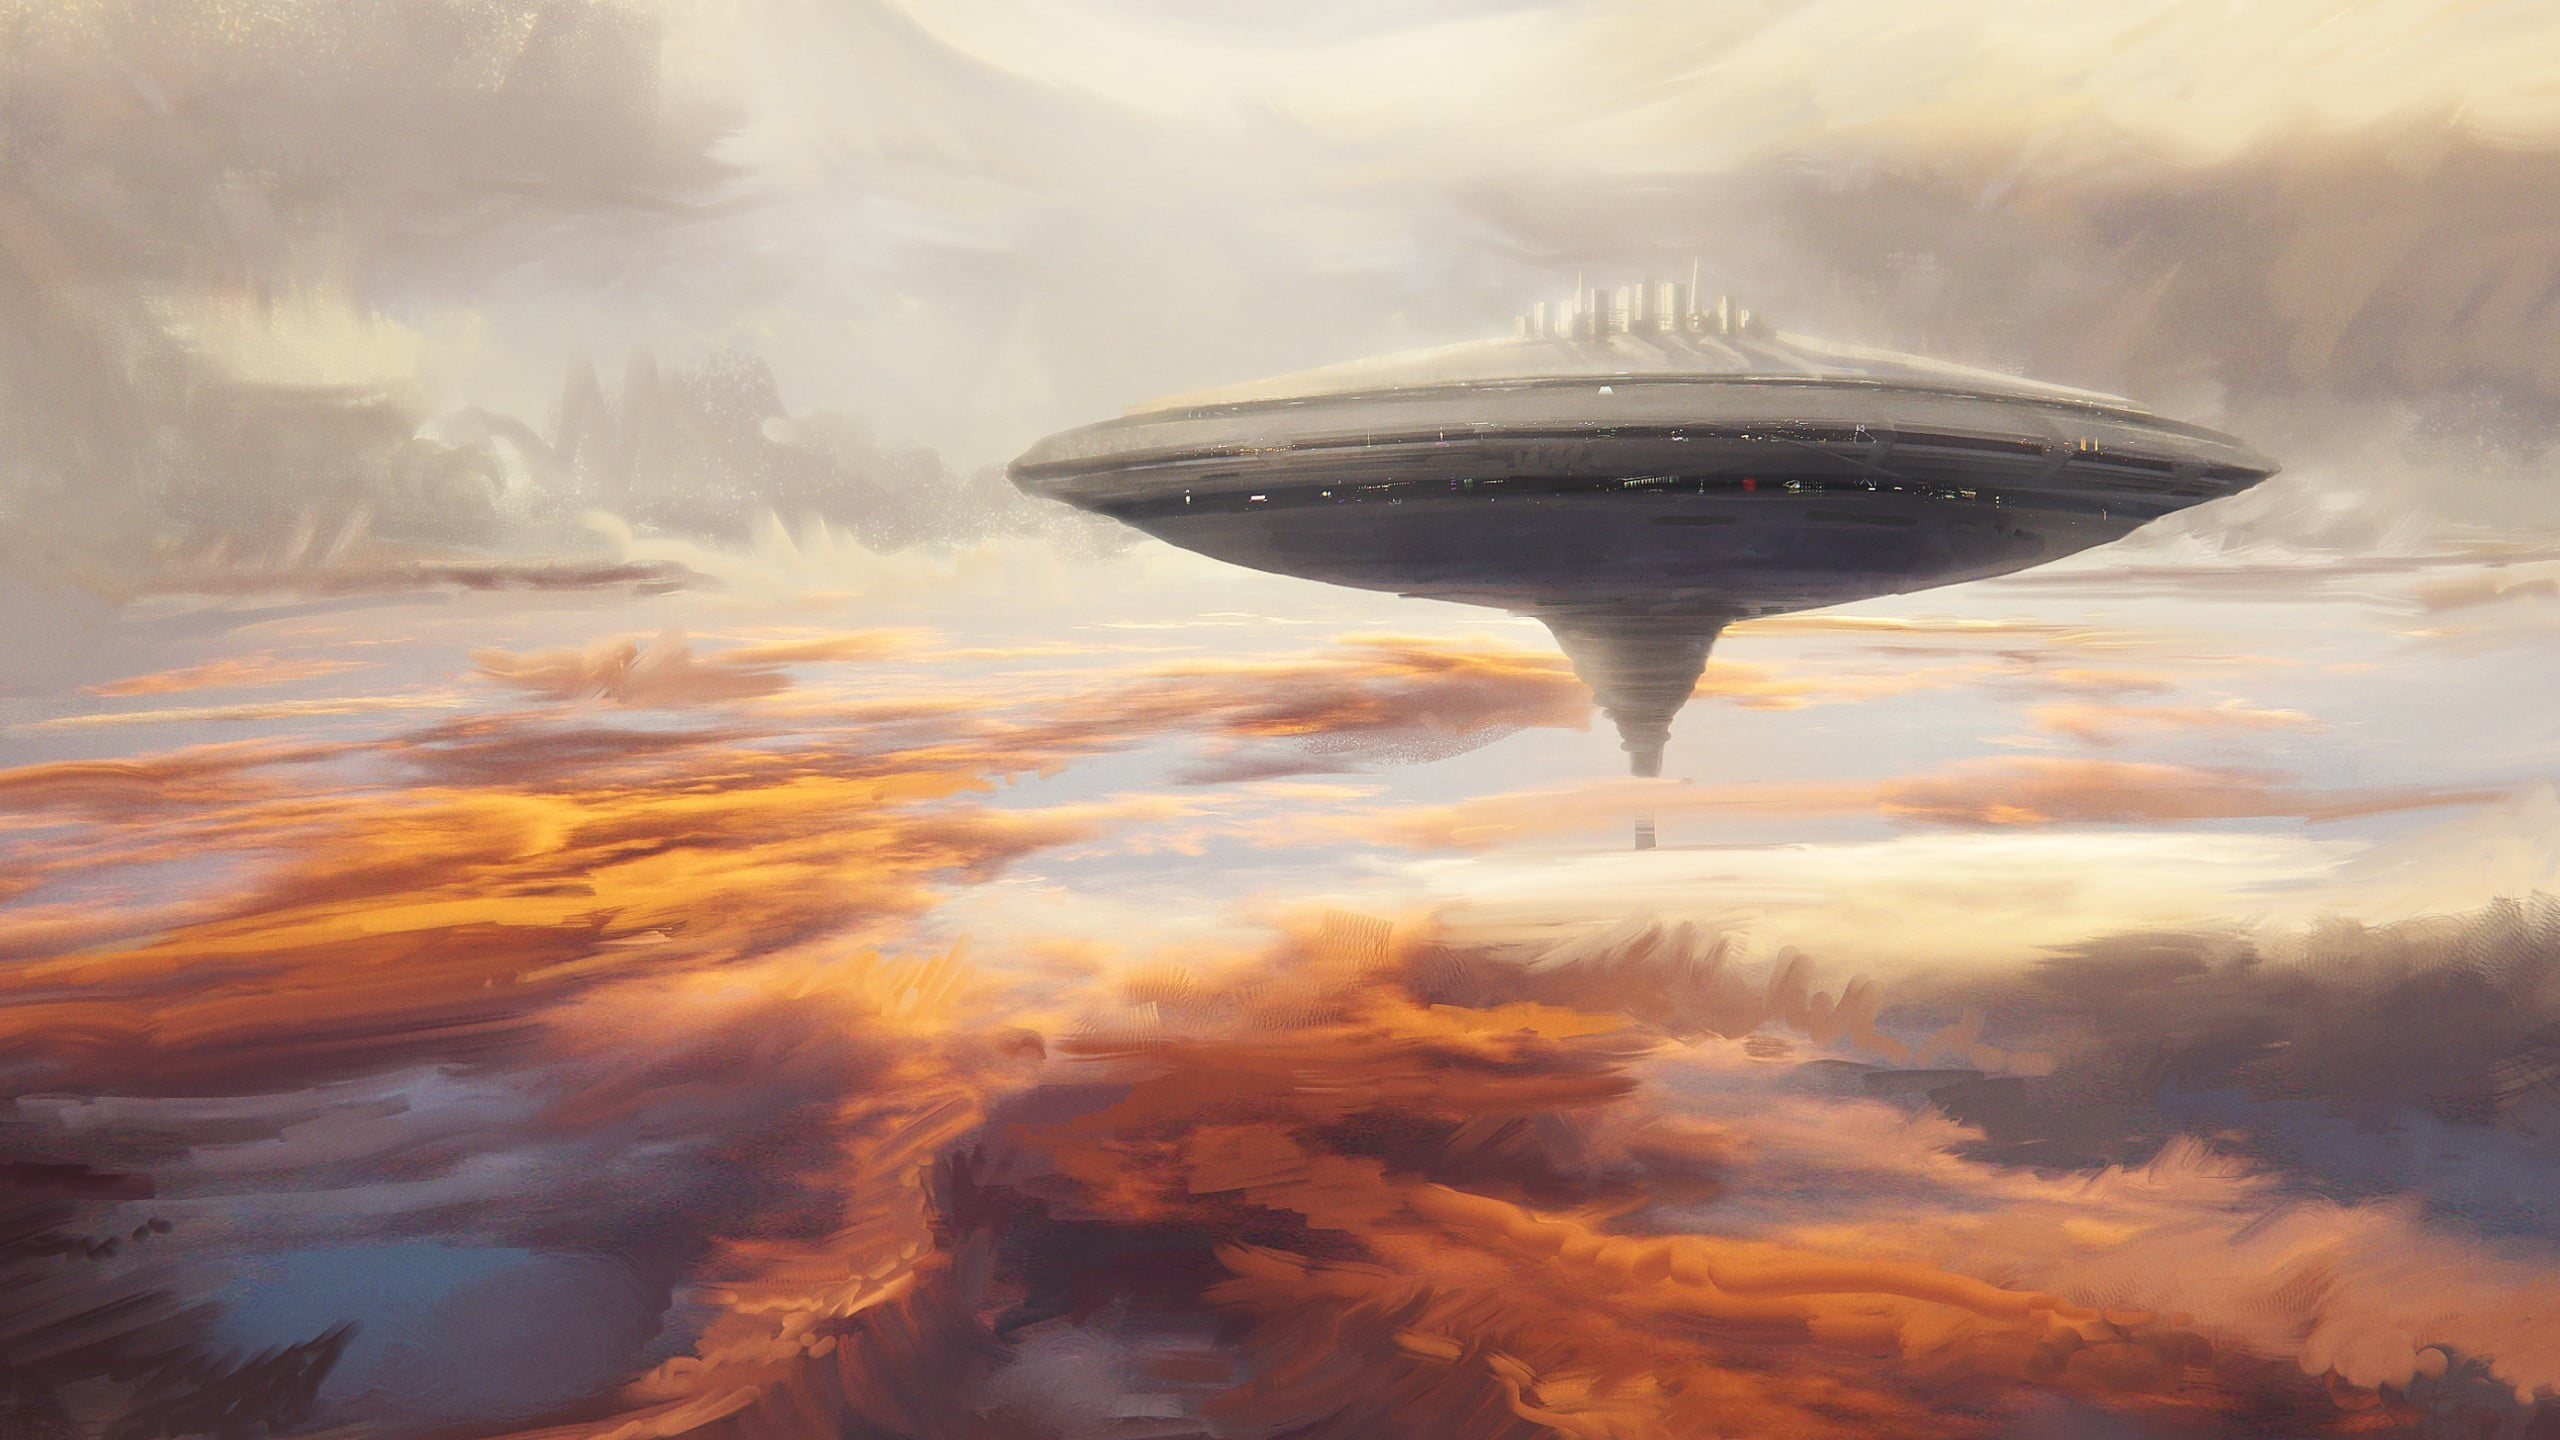 Floating gray spaceship digital wallpaper Star Wars cloud city 2560x1440